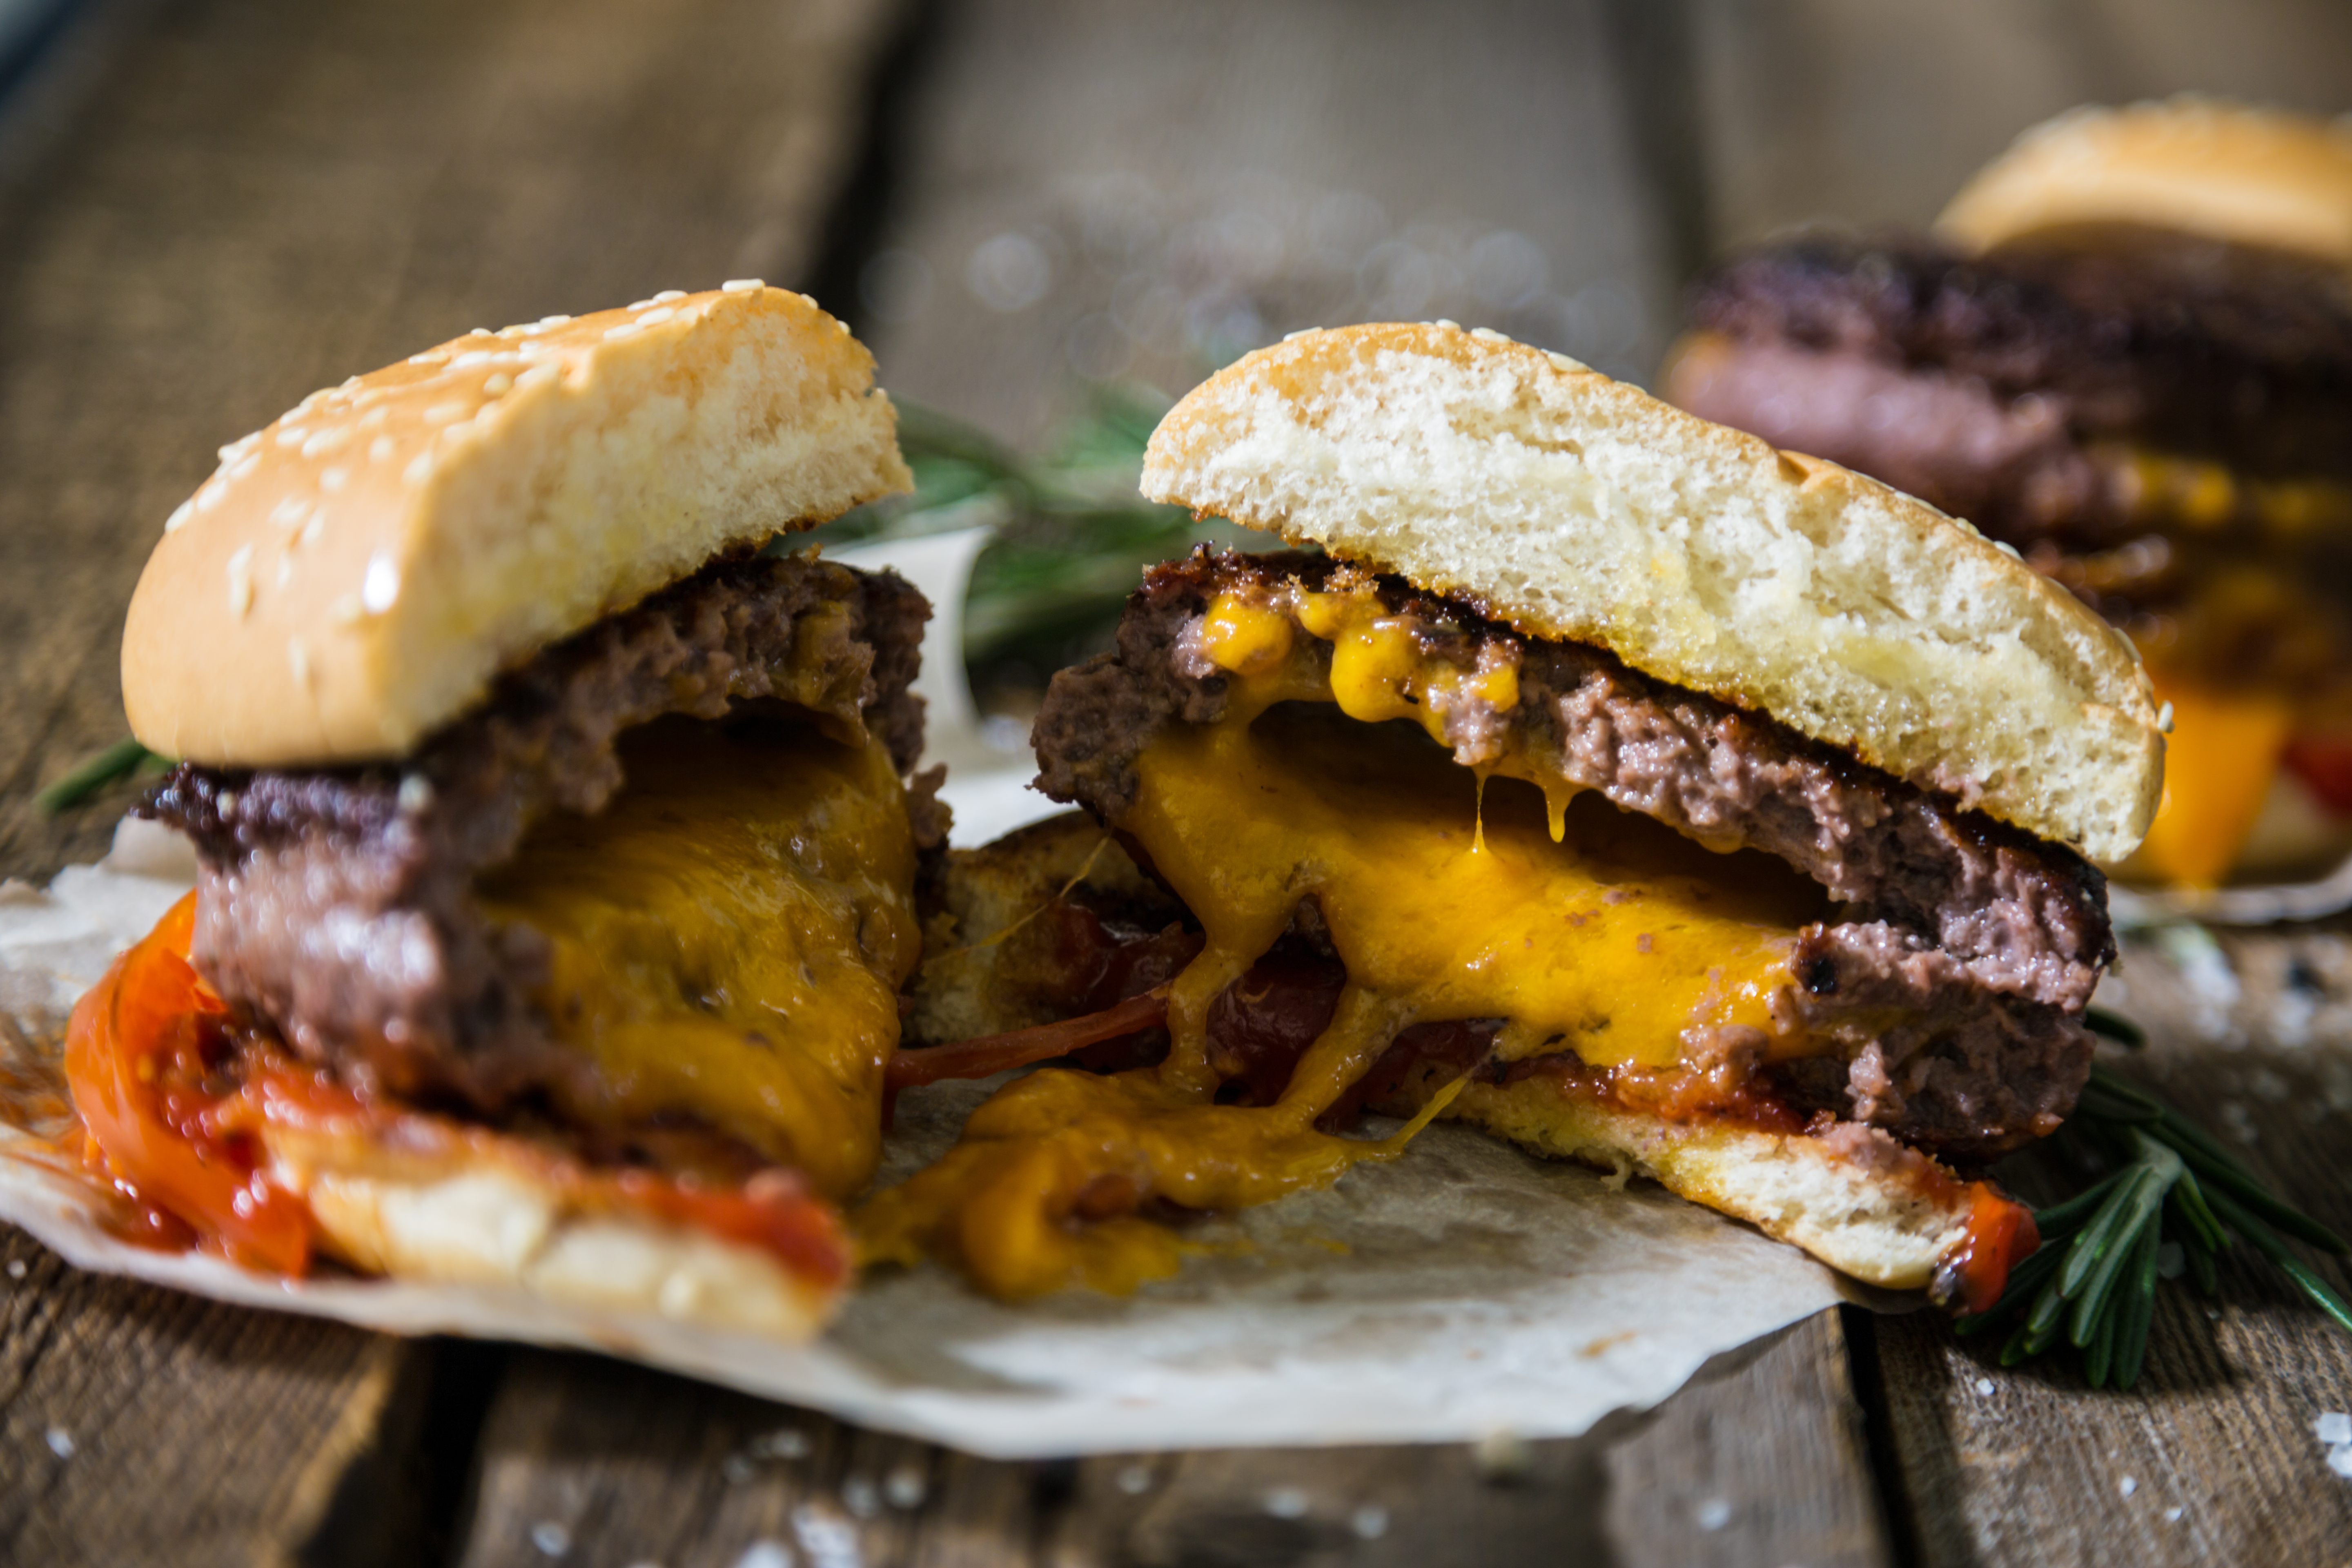 A juicy lucy burger cut in half with cheddar cheese baked into the meat